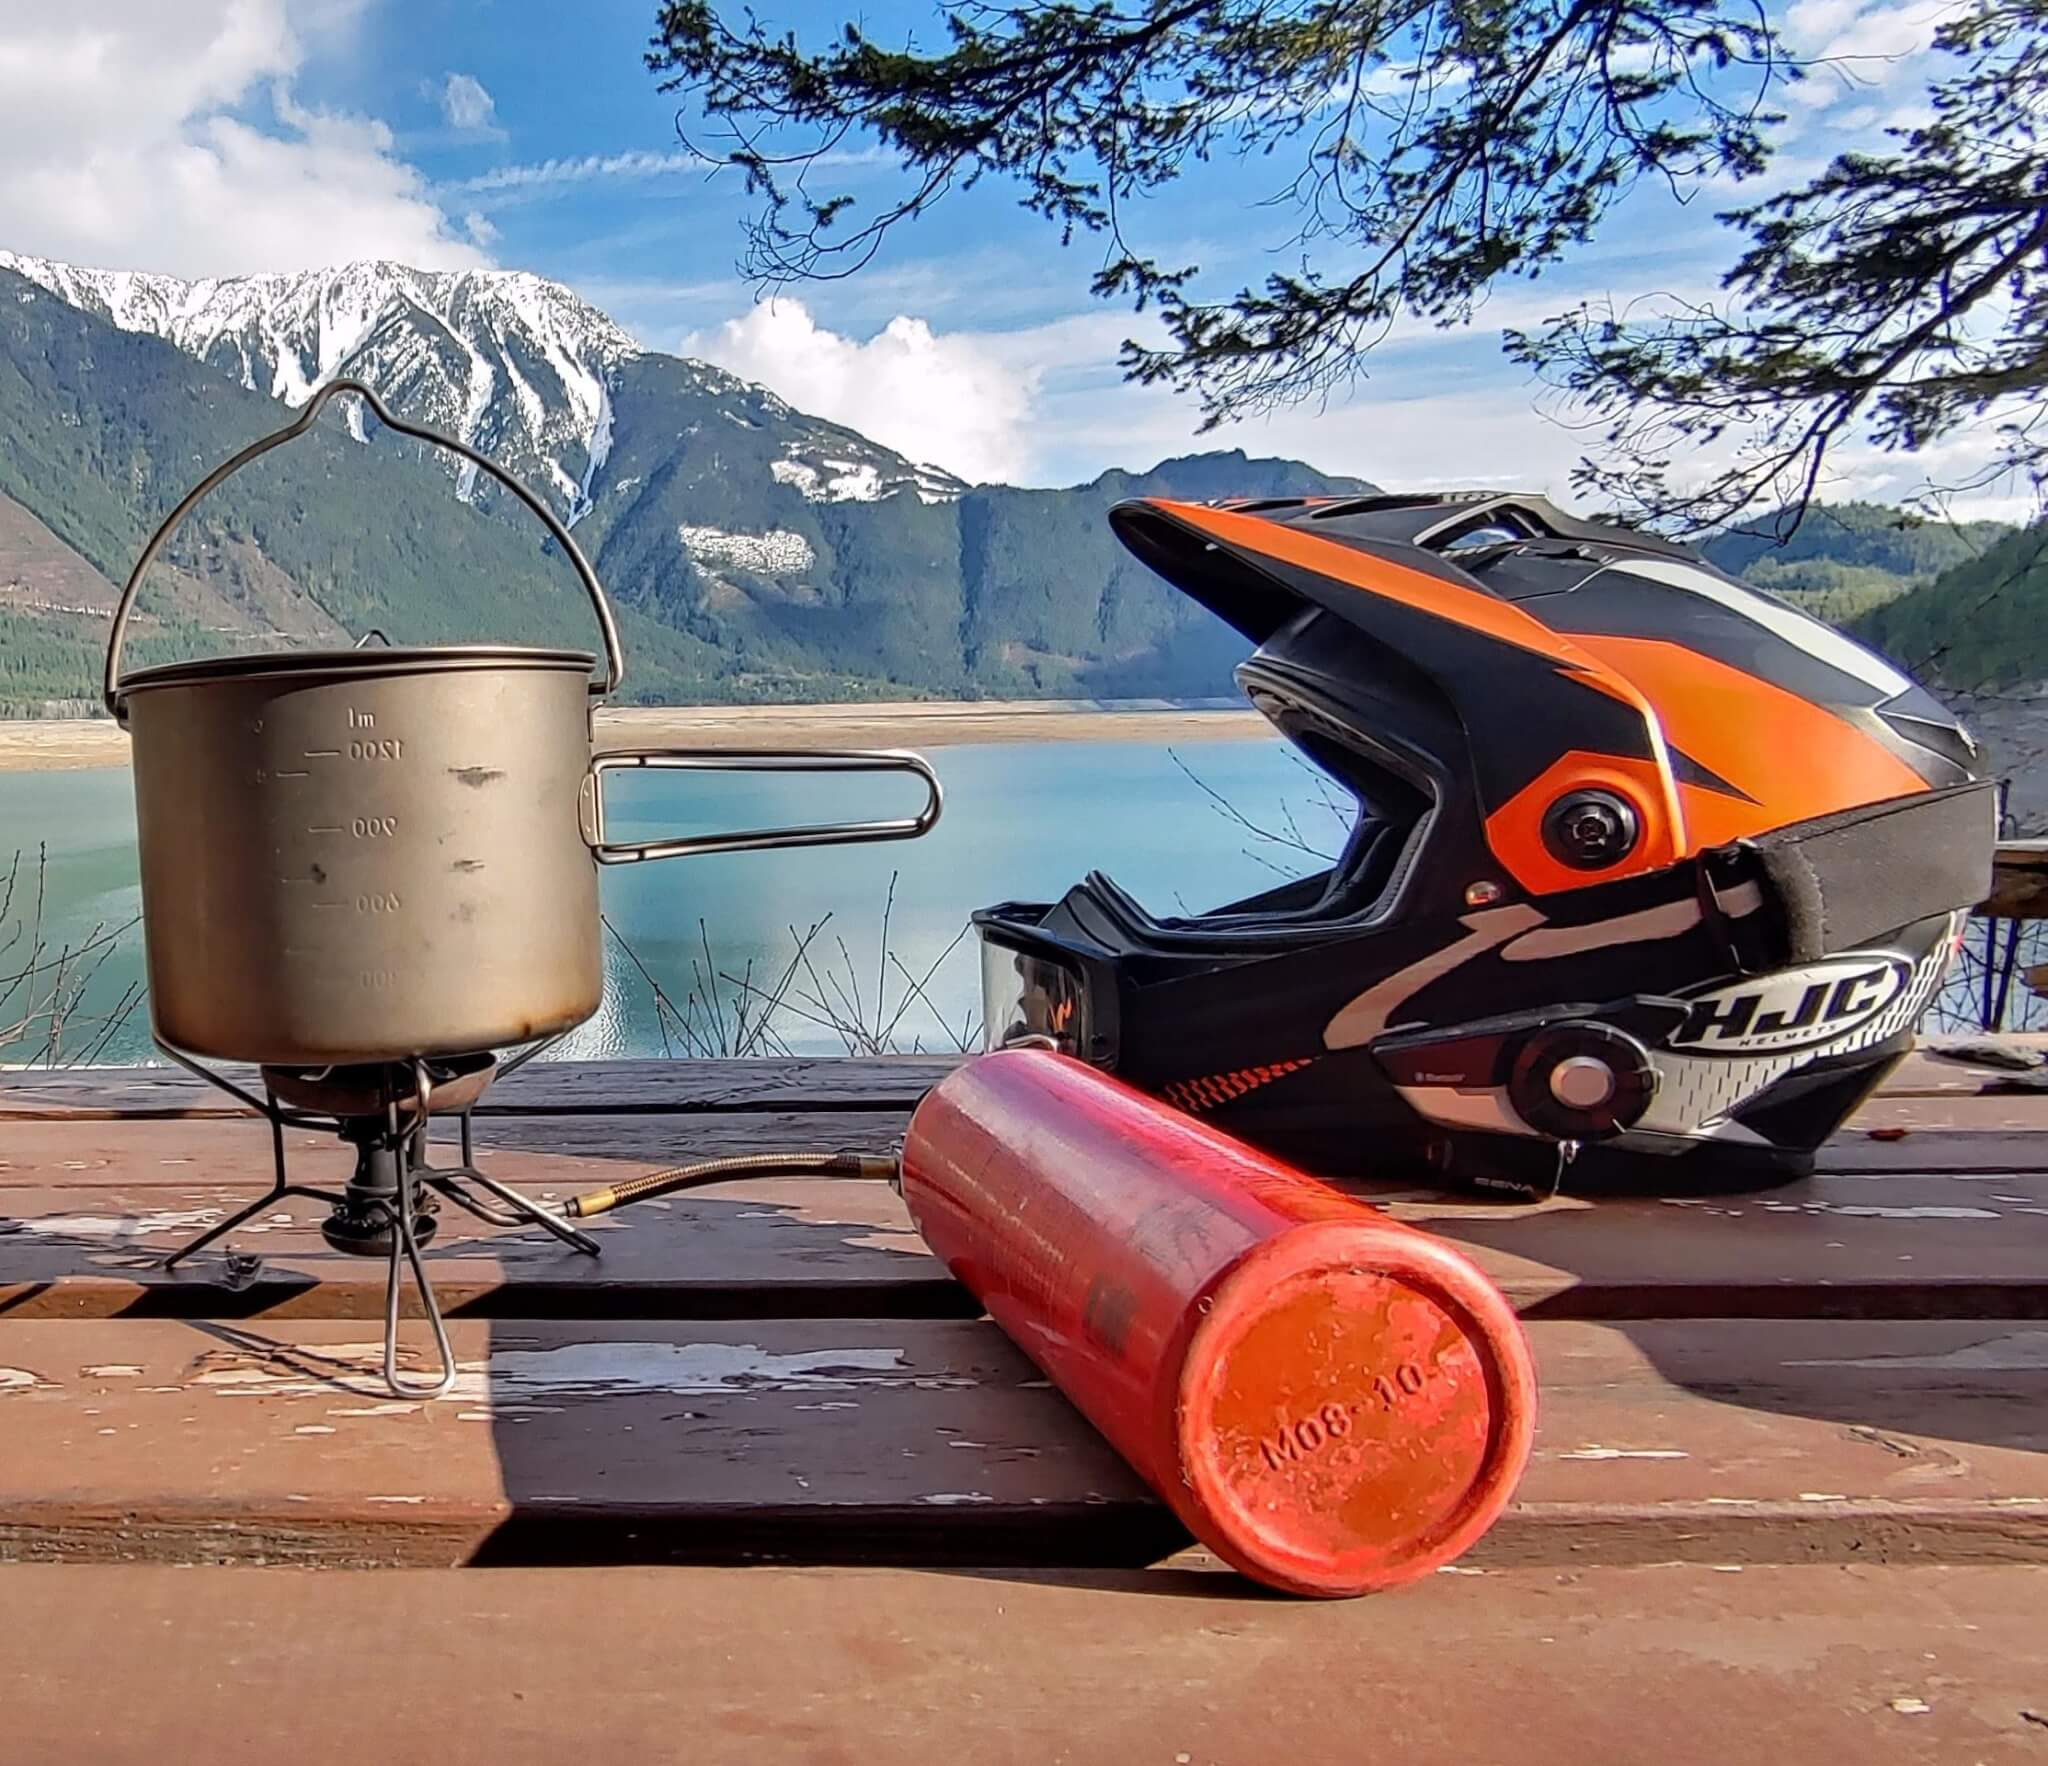 MSR Whisperlite Intentional cooking motorcycle camping